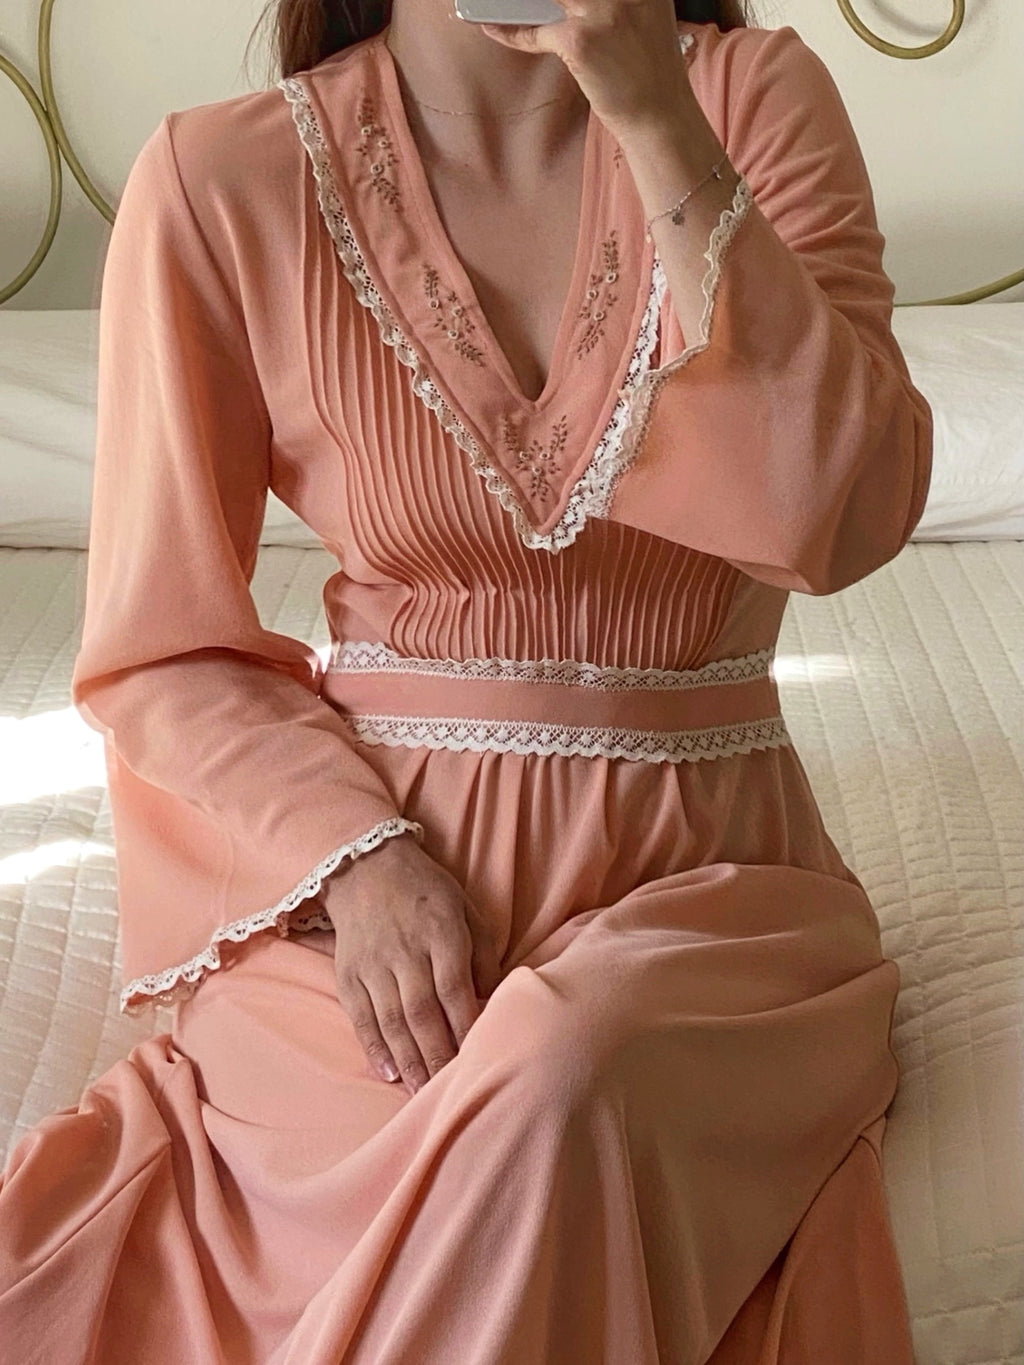 Vintage 70s lace details embroidered peach dress/nightgown